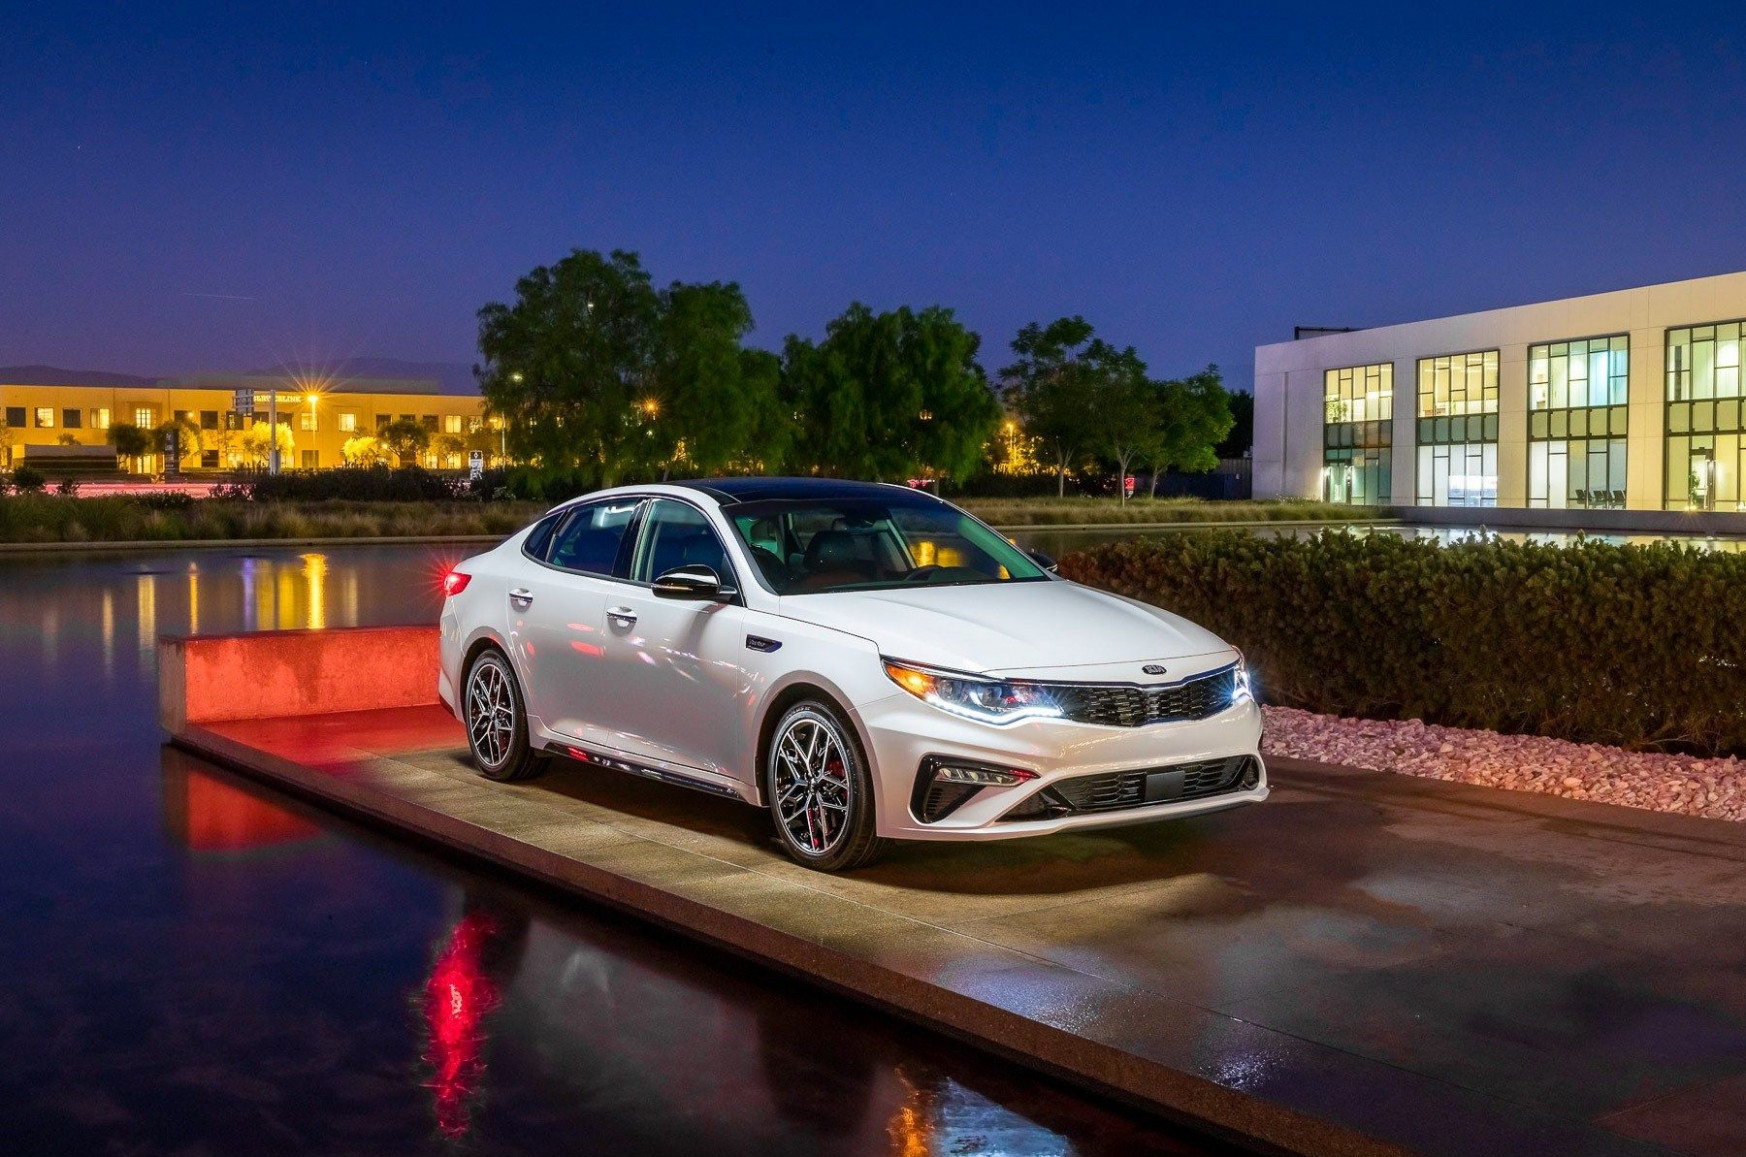 8 Kia Optima Review, Pricing, and Specs